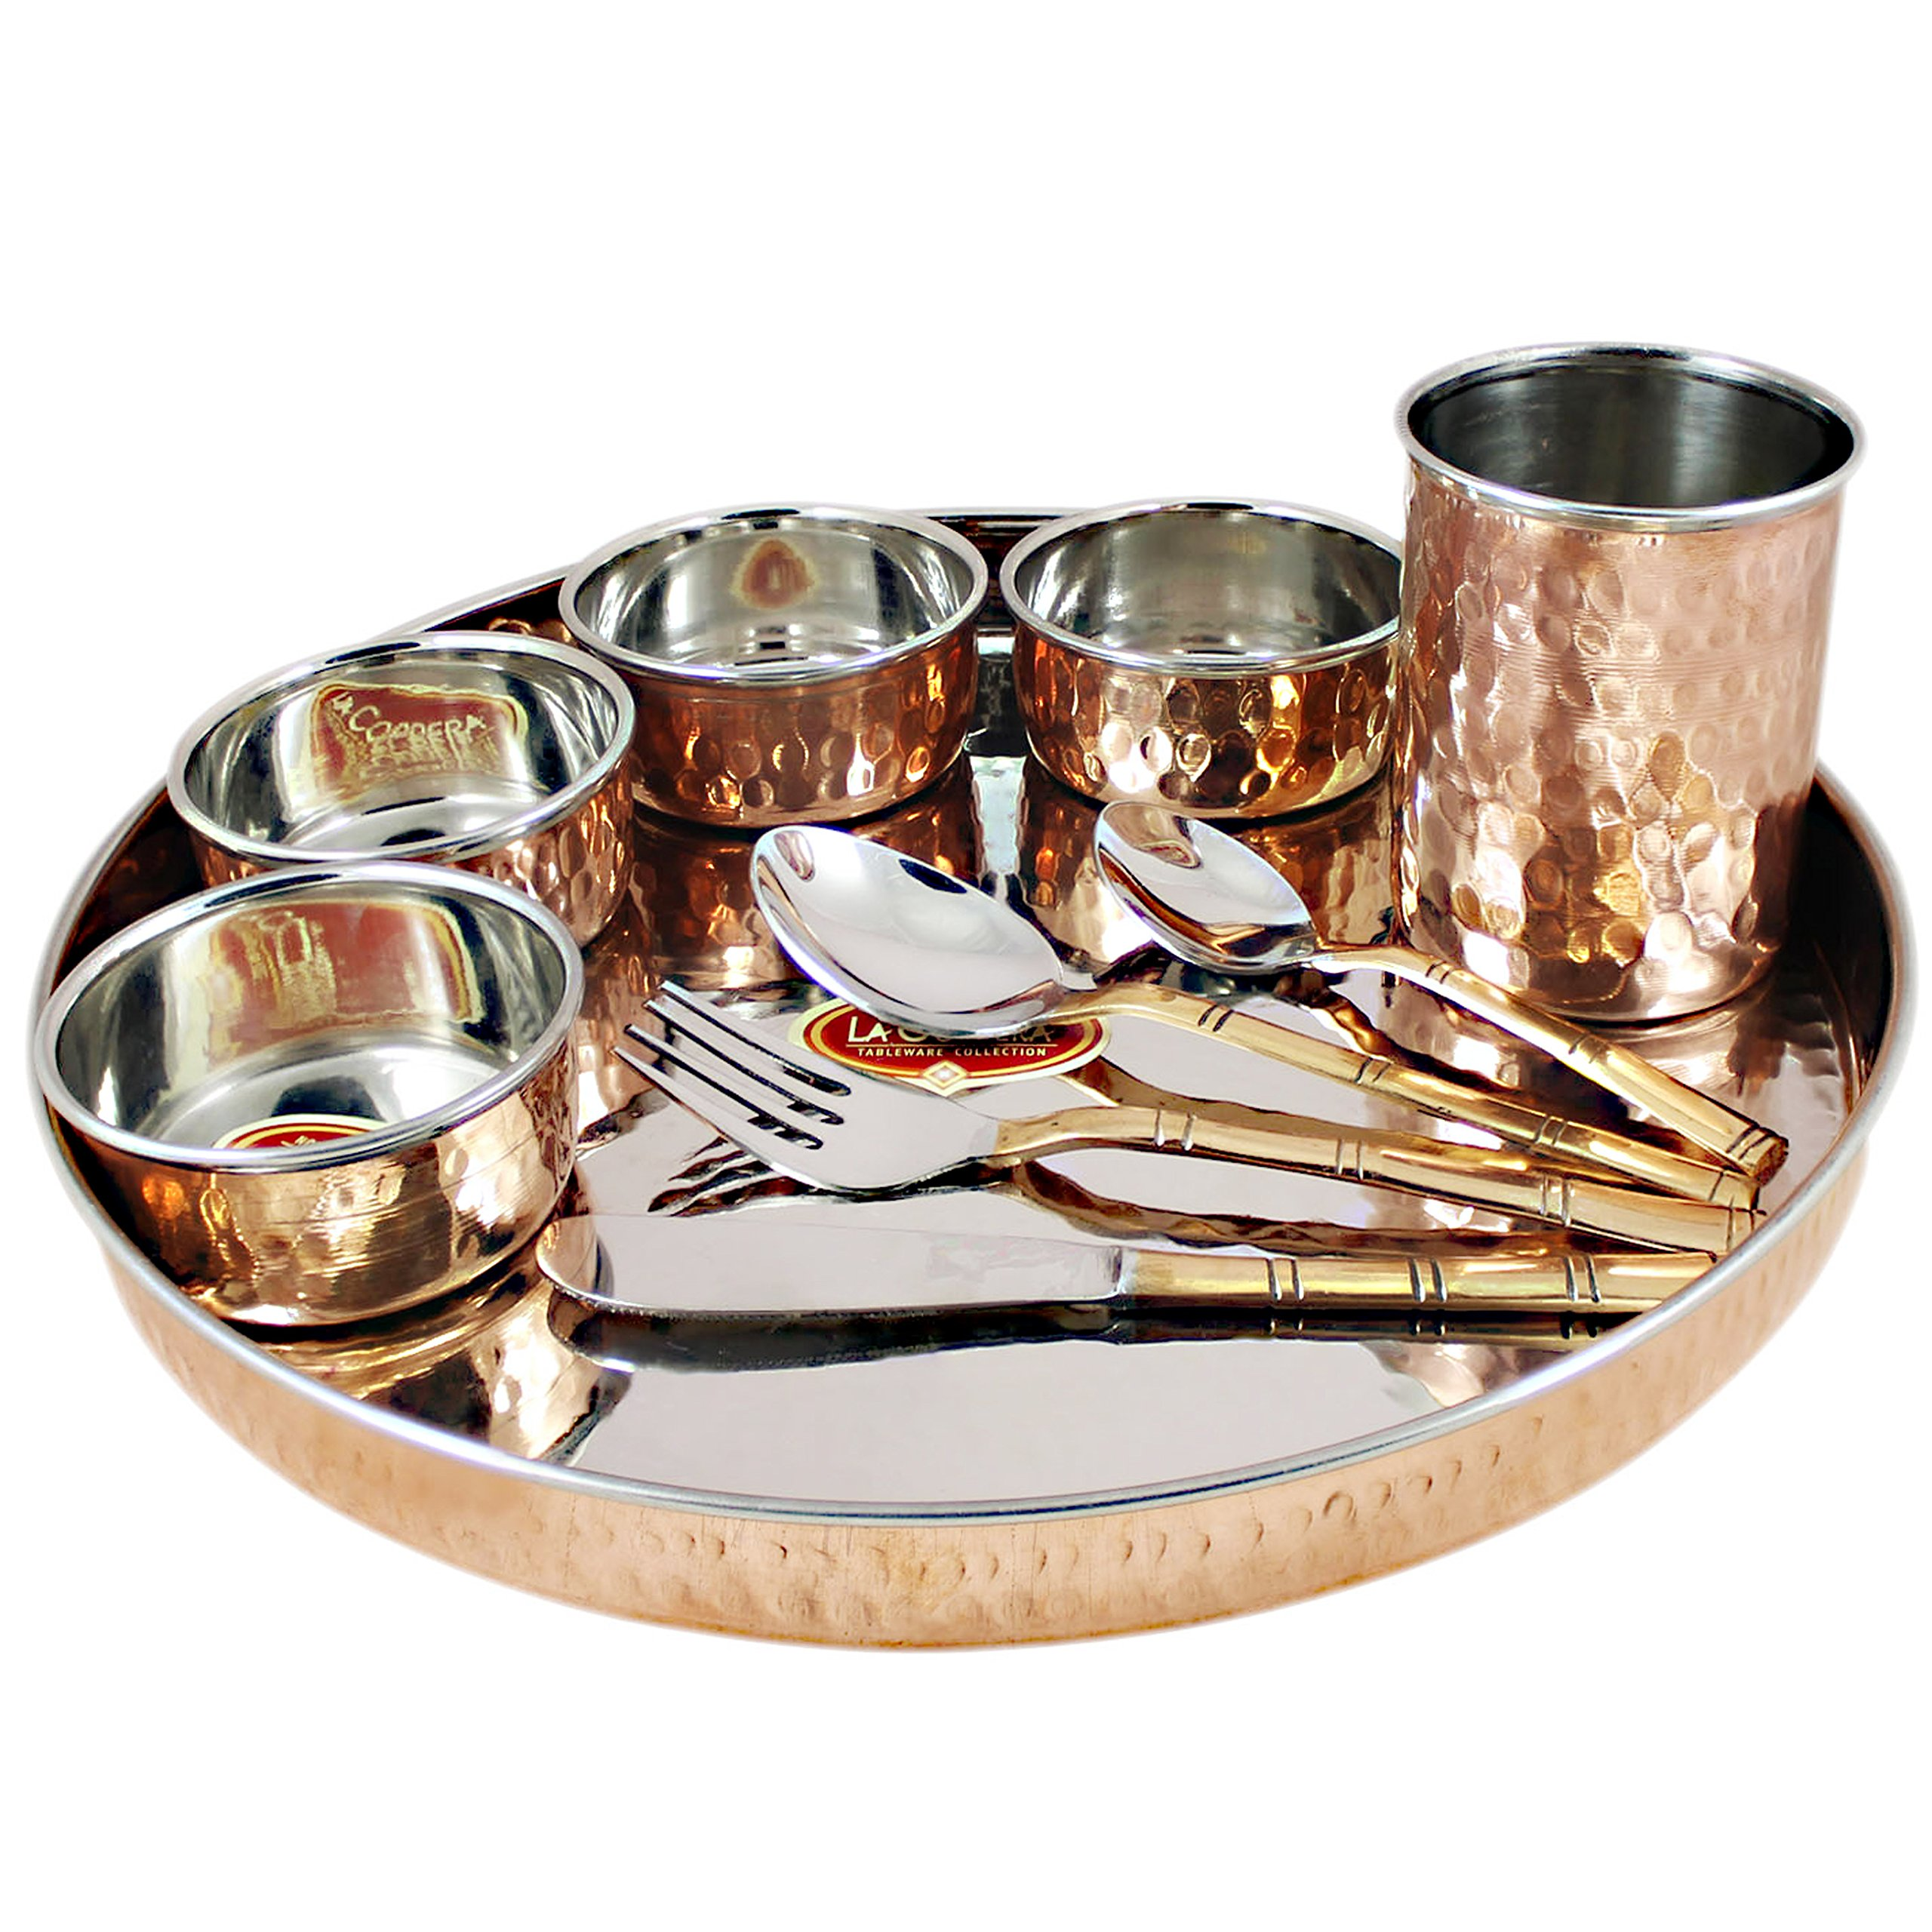 Service for 6, Dinnerware Set Copper Stainless Steel Dinner Plate, Bowls, Water Glass and Cutlery Set